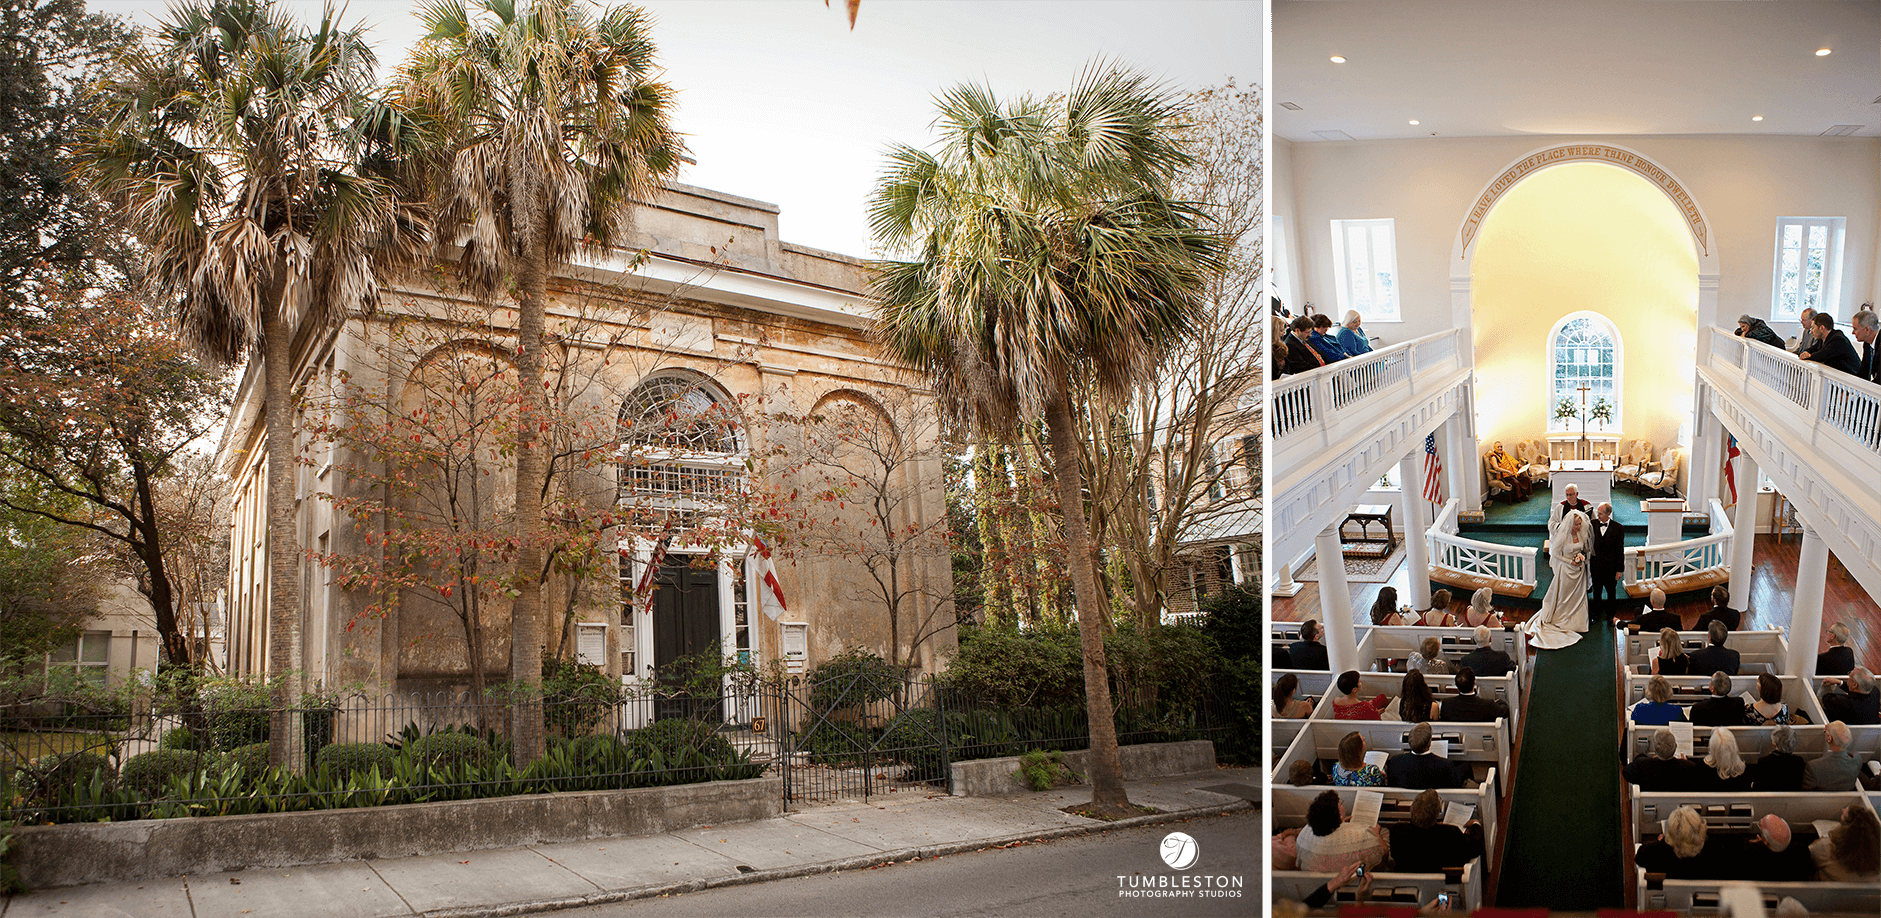 Our favorite wedding chapels best wedding venues in charleston sc st stephens chapel charleston junglespirit Choice Image